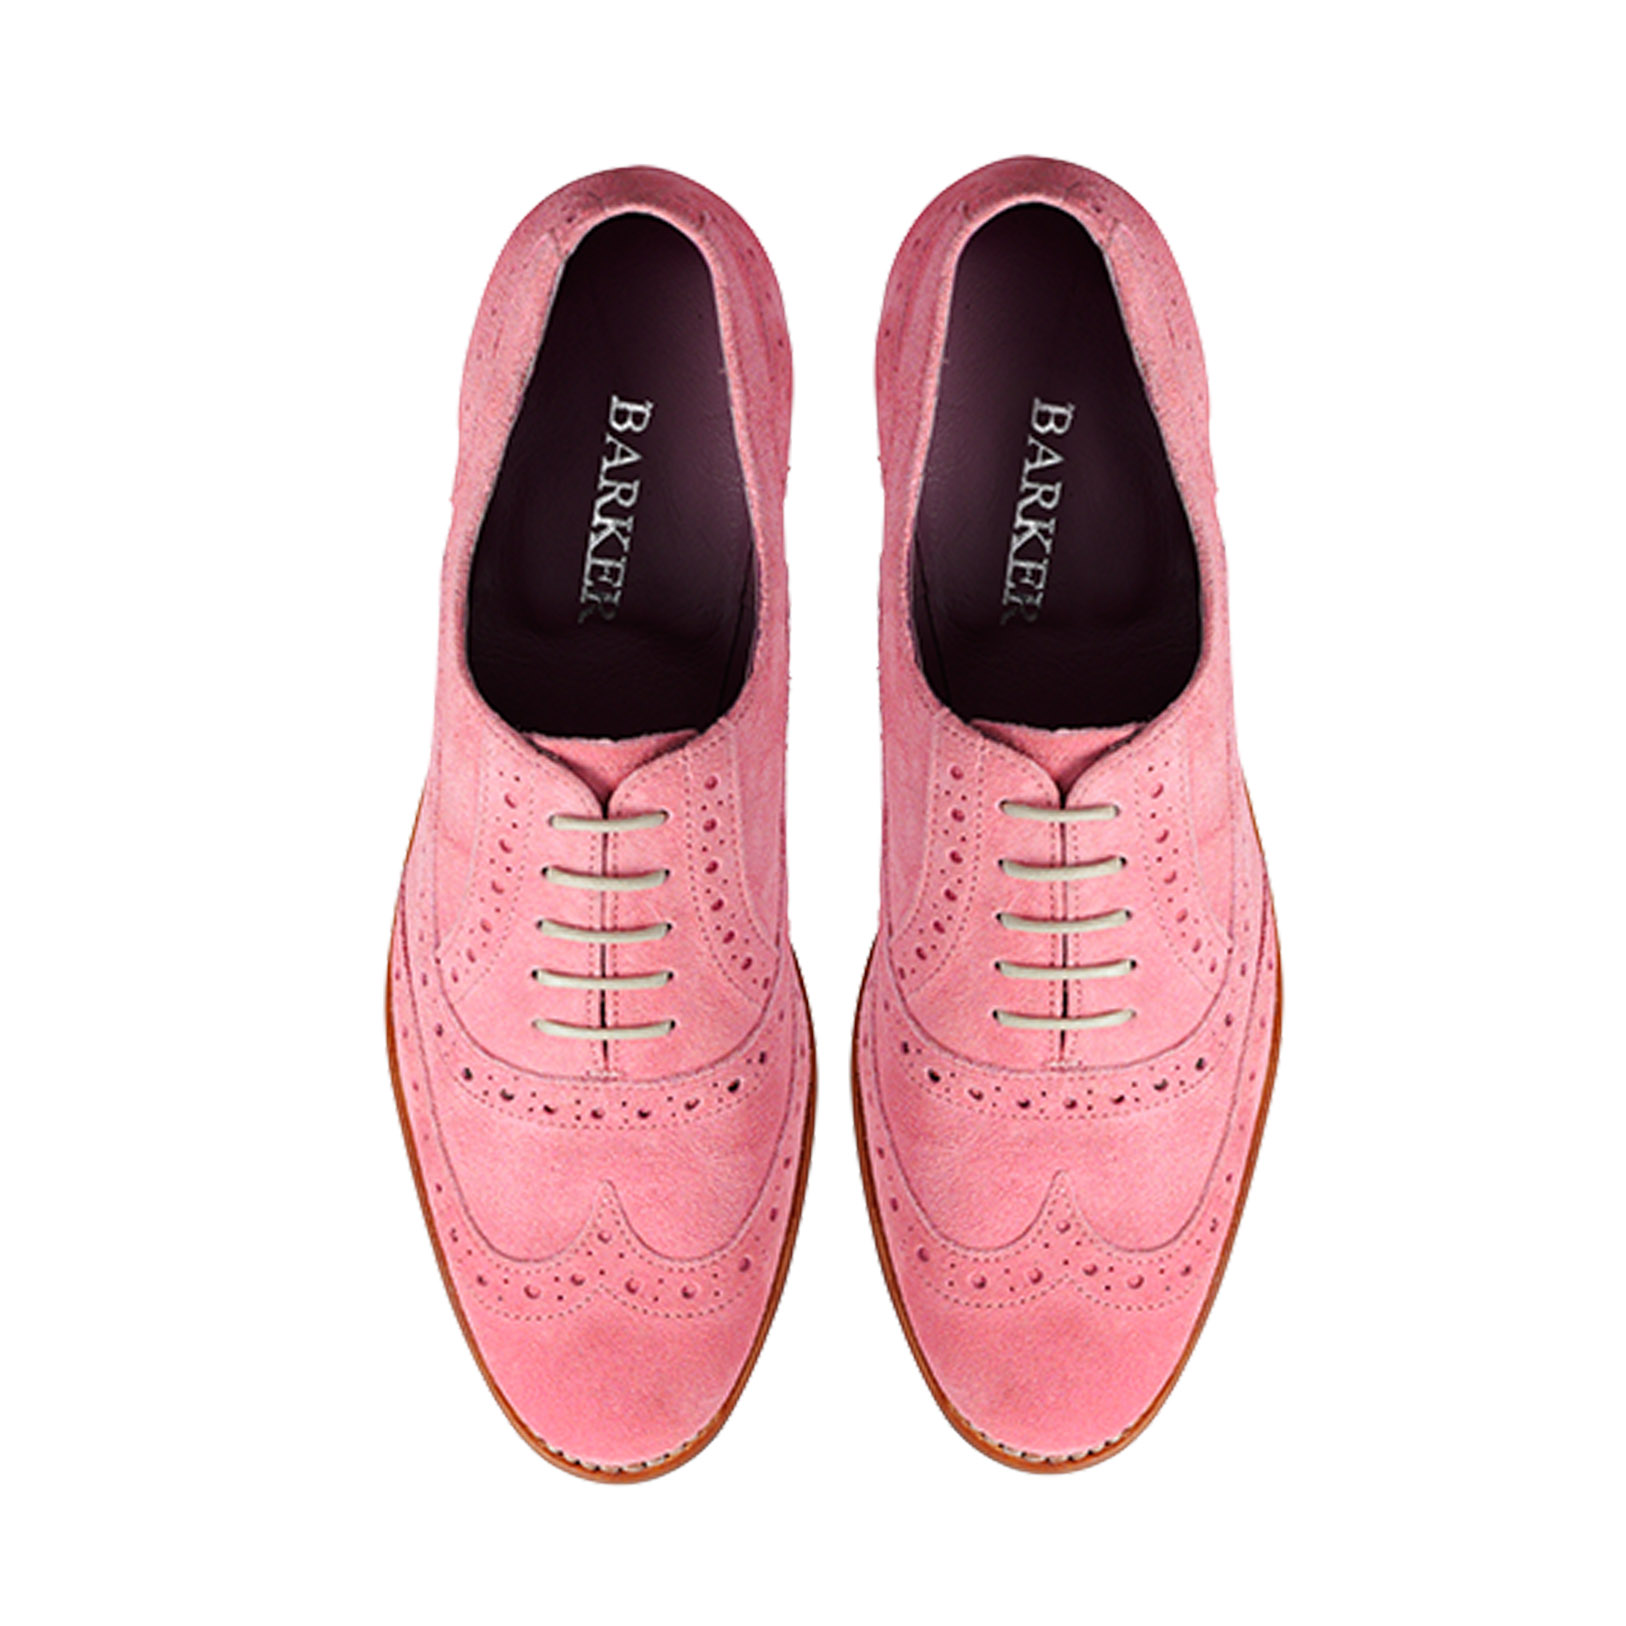 12bfc750f615e4 Home/Ladies/Ladies Barker Freya Pink Suede. 🔍. Previous; Next